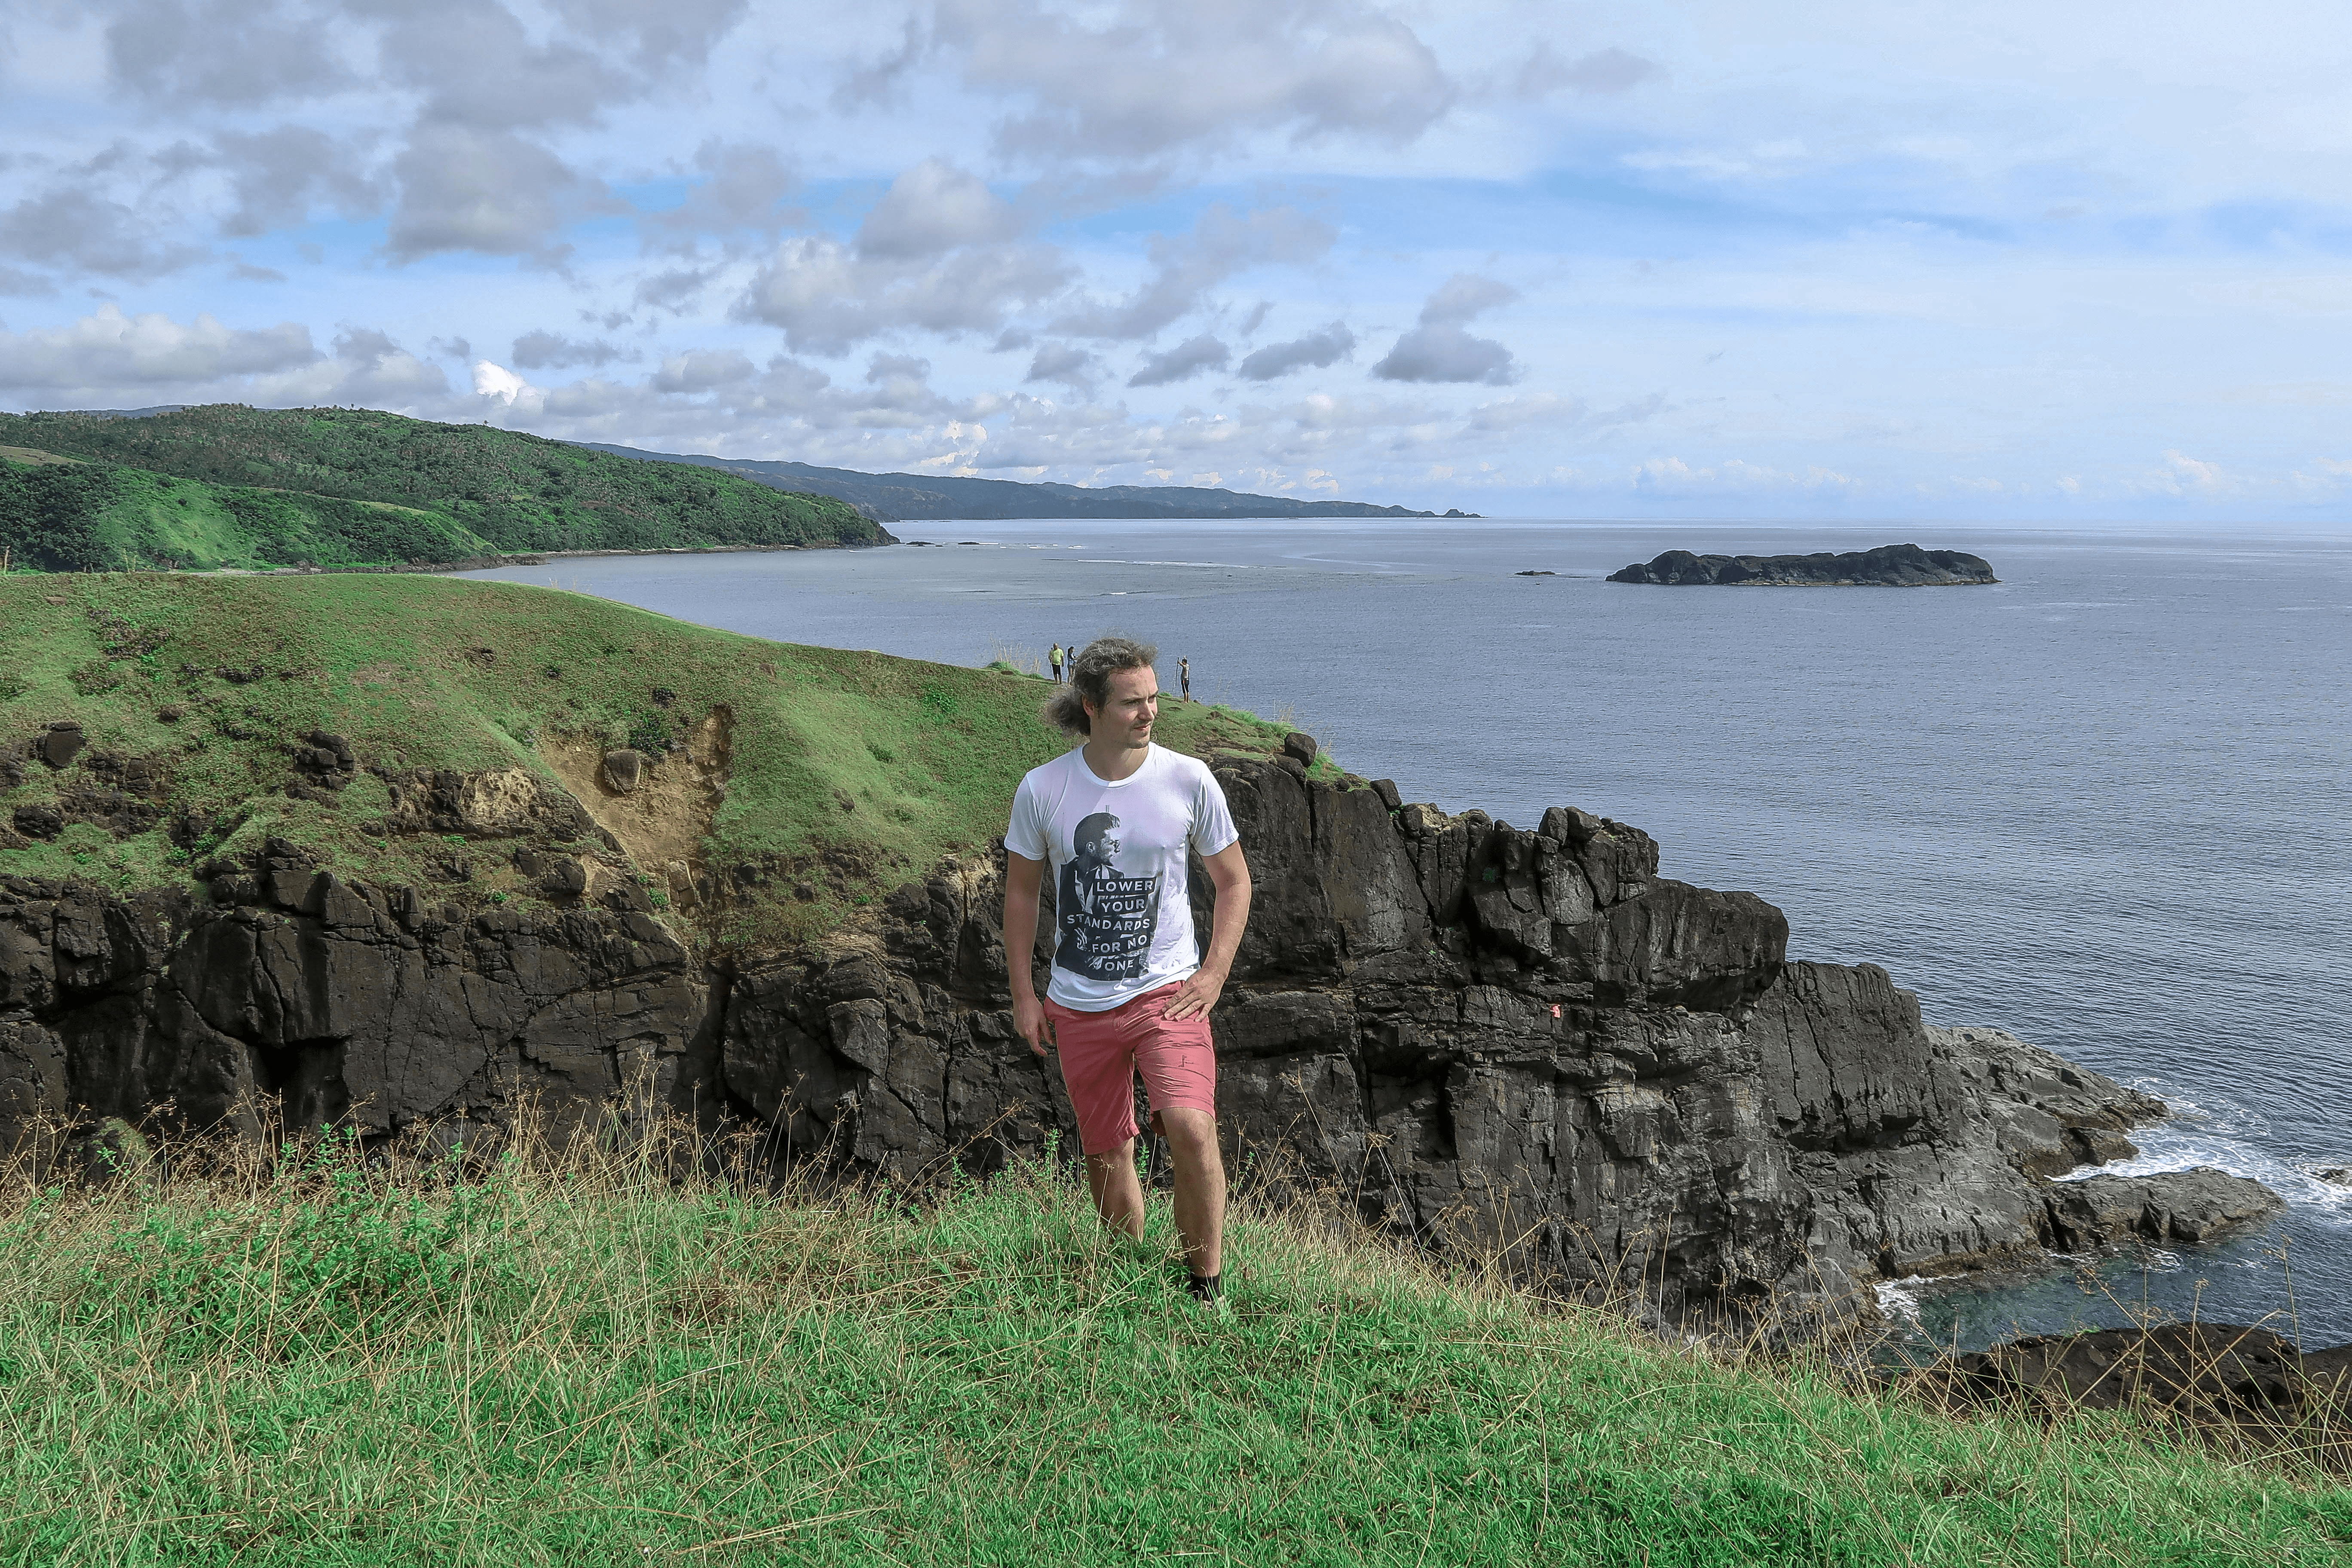 Lenny through paradise with point binurong catanduanes philippines